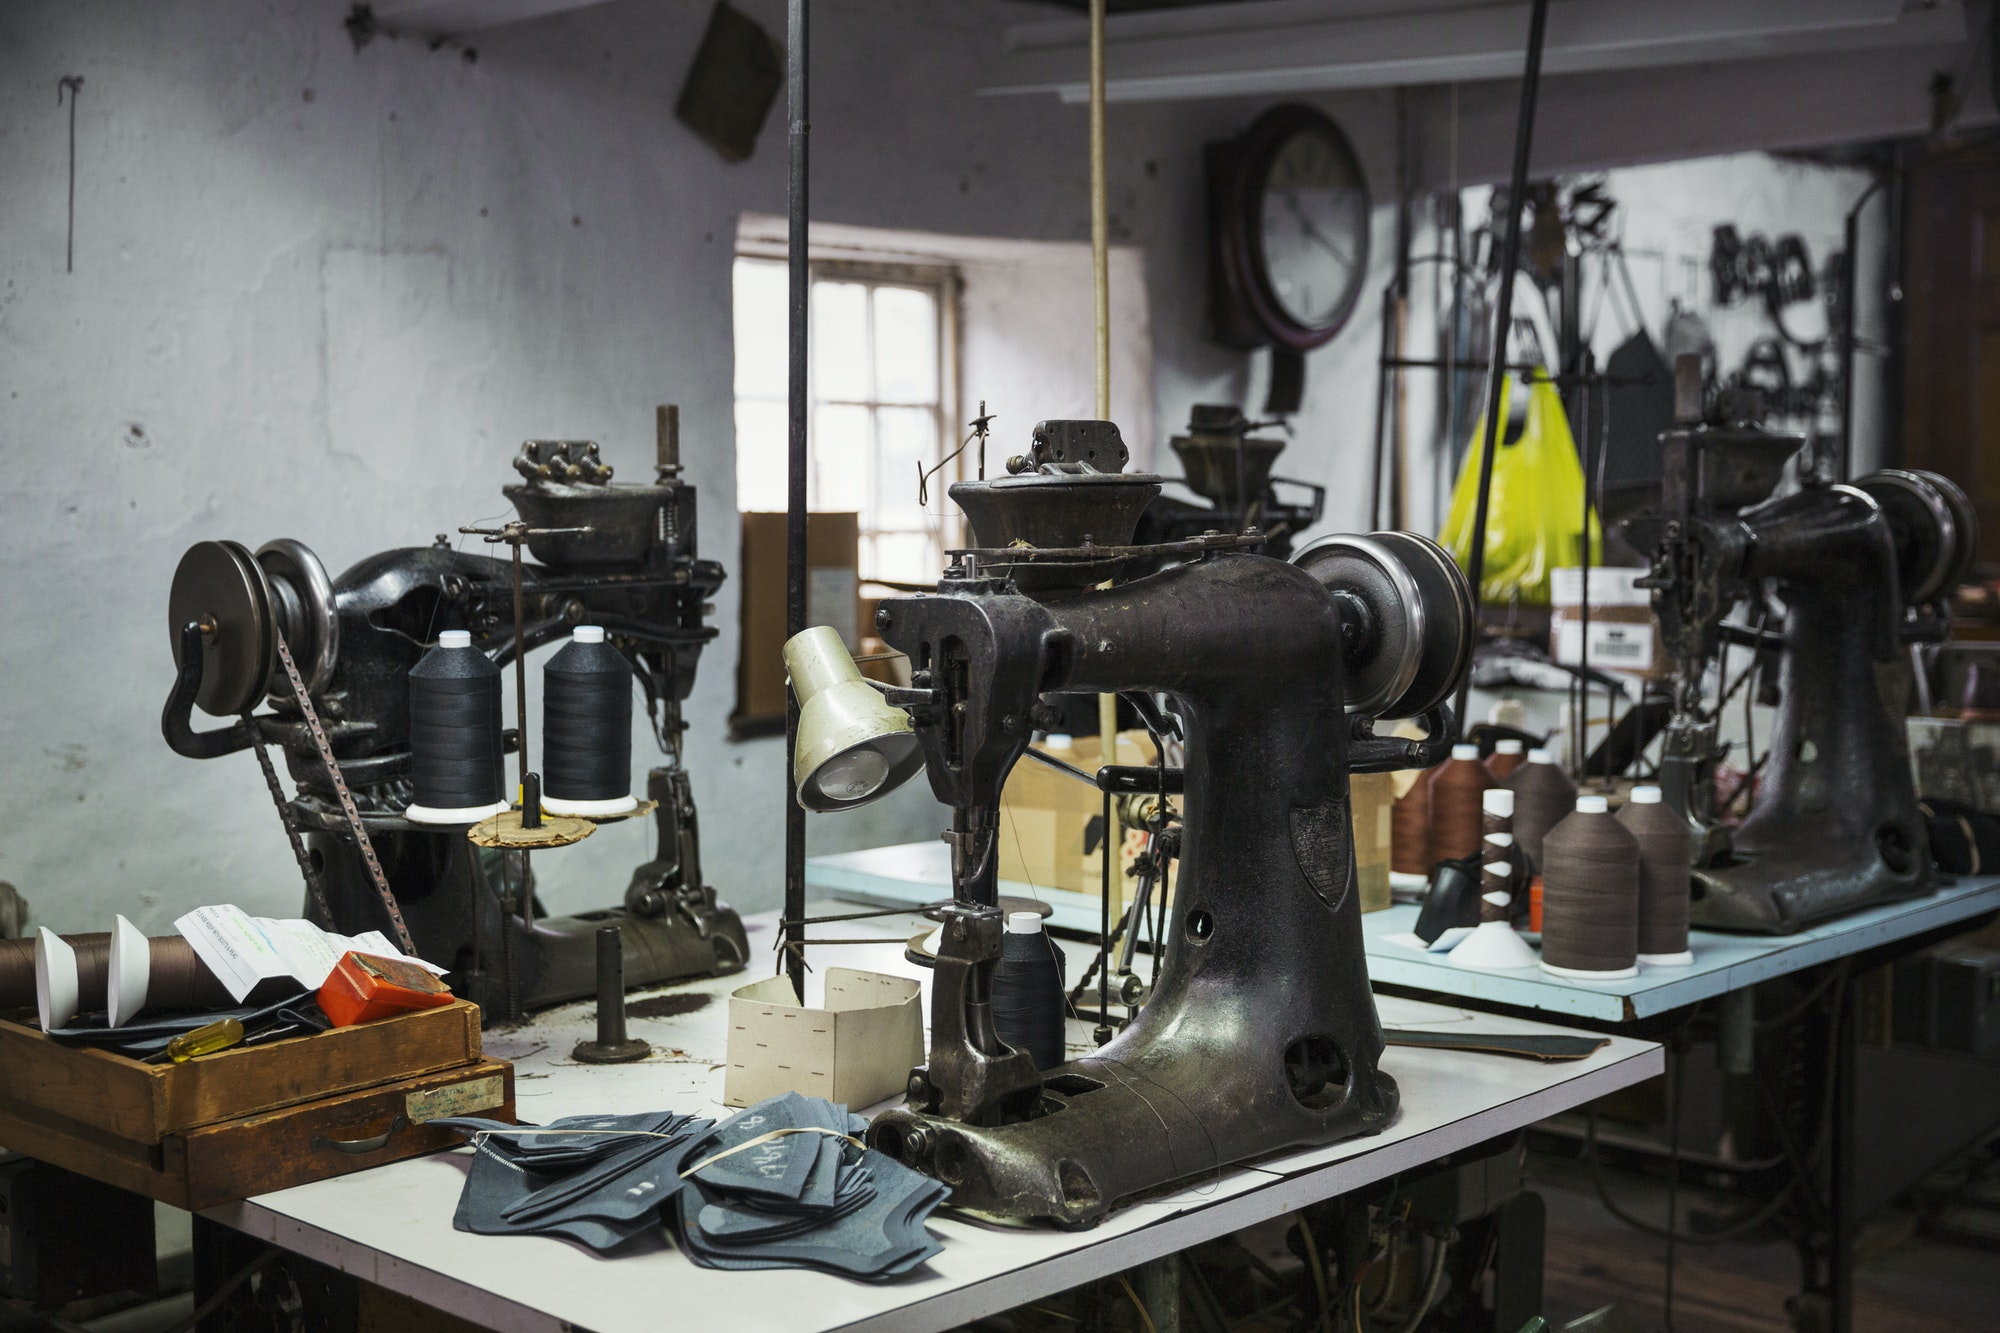 Sewing machines in a shoemaker's workshop.